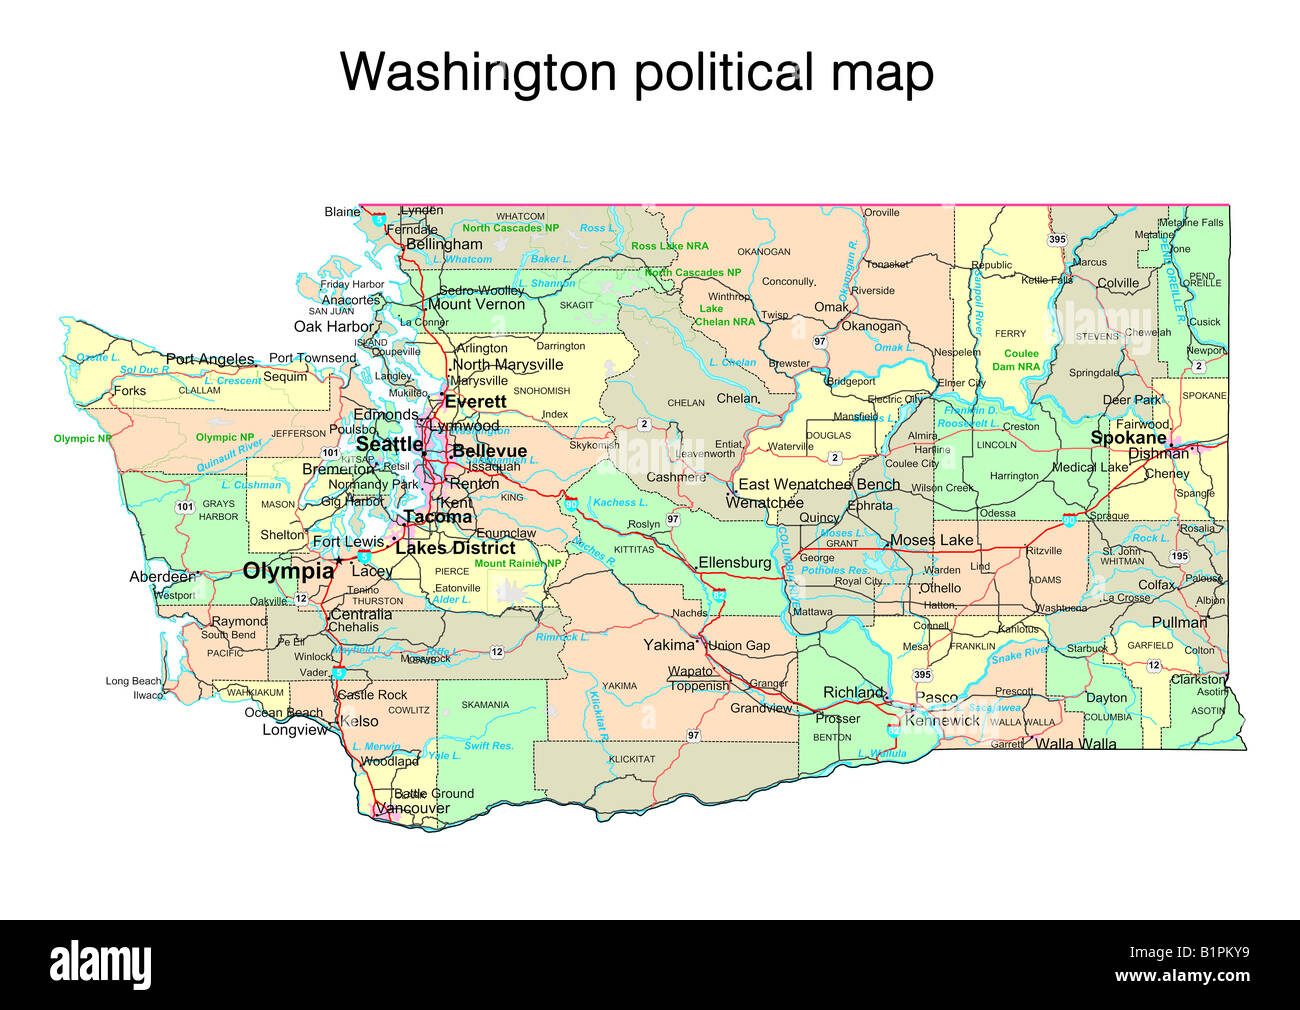 Washington State Political Map Stock Photo Royalty Free Image - Map of washington state